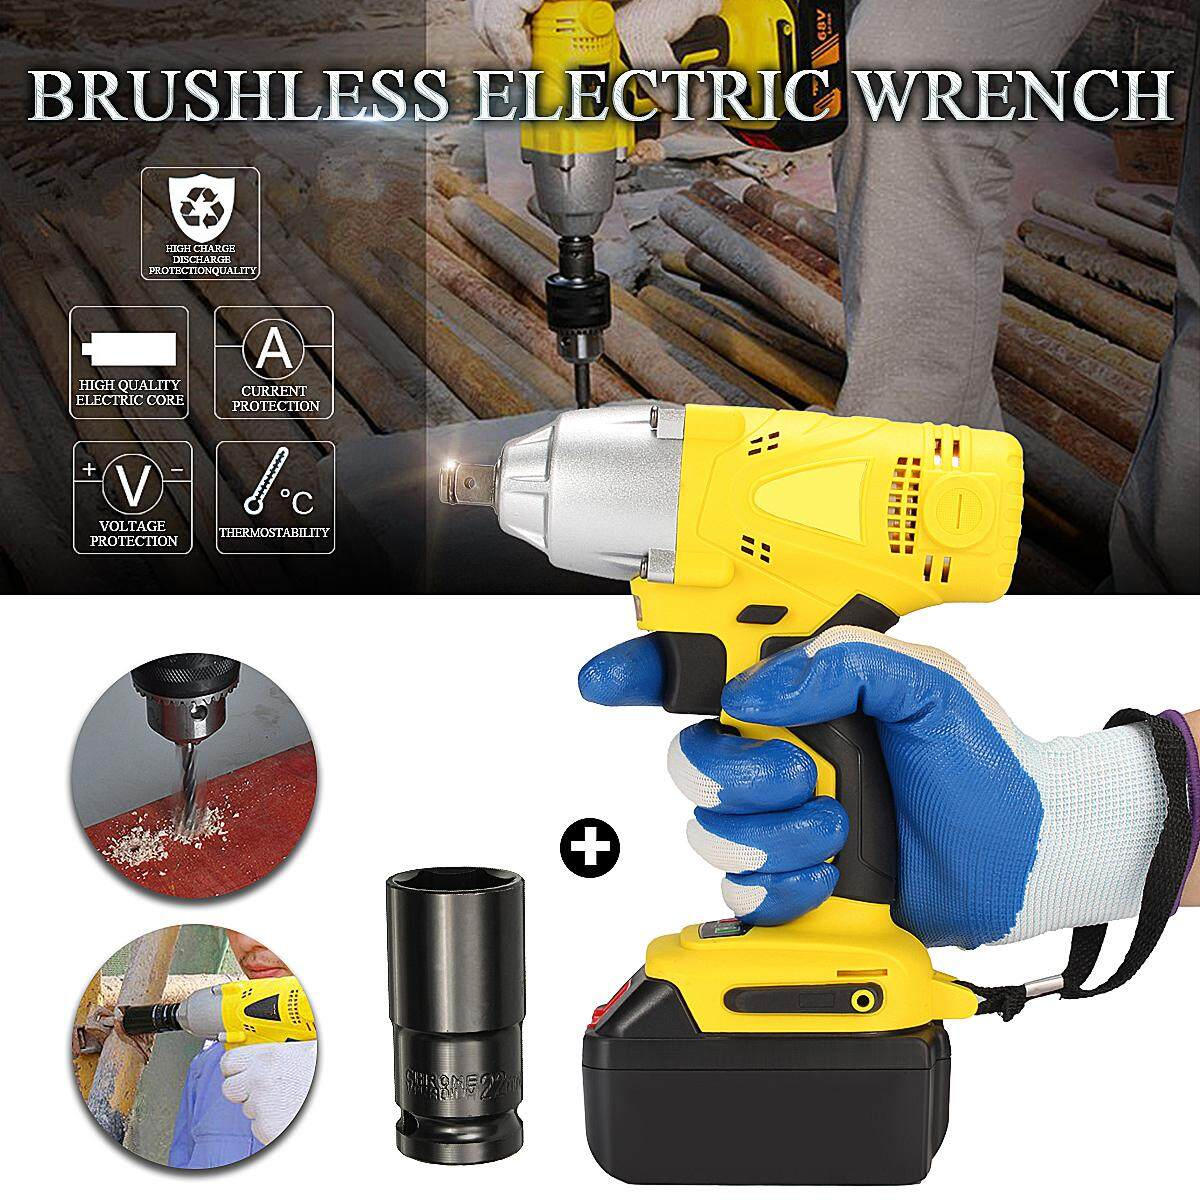 【Free Shipping + Flash Deal 】68-99V 340nm 3200RPM 11880mAh Cordless Brushless Impact Wrench Power Tool Home NEW